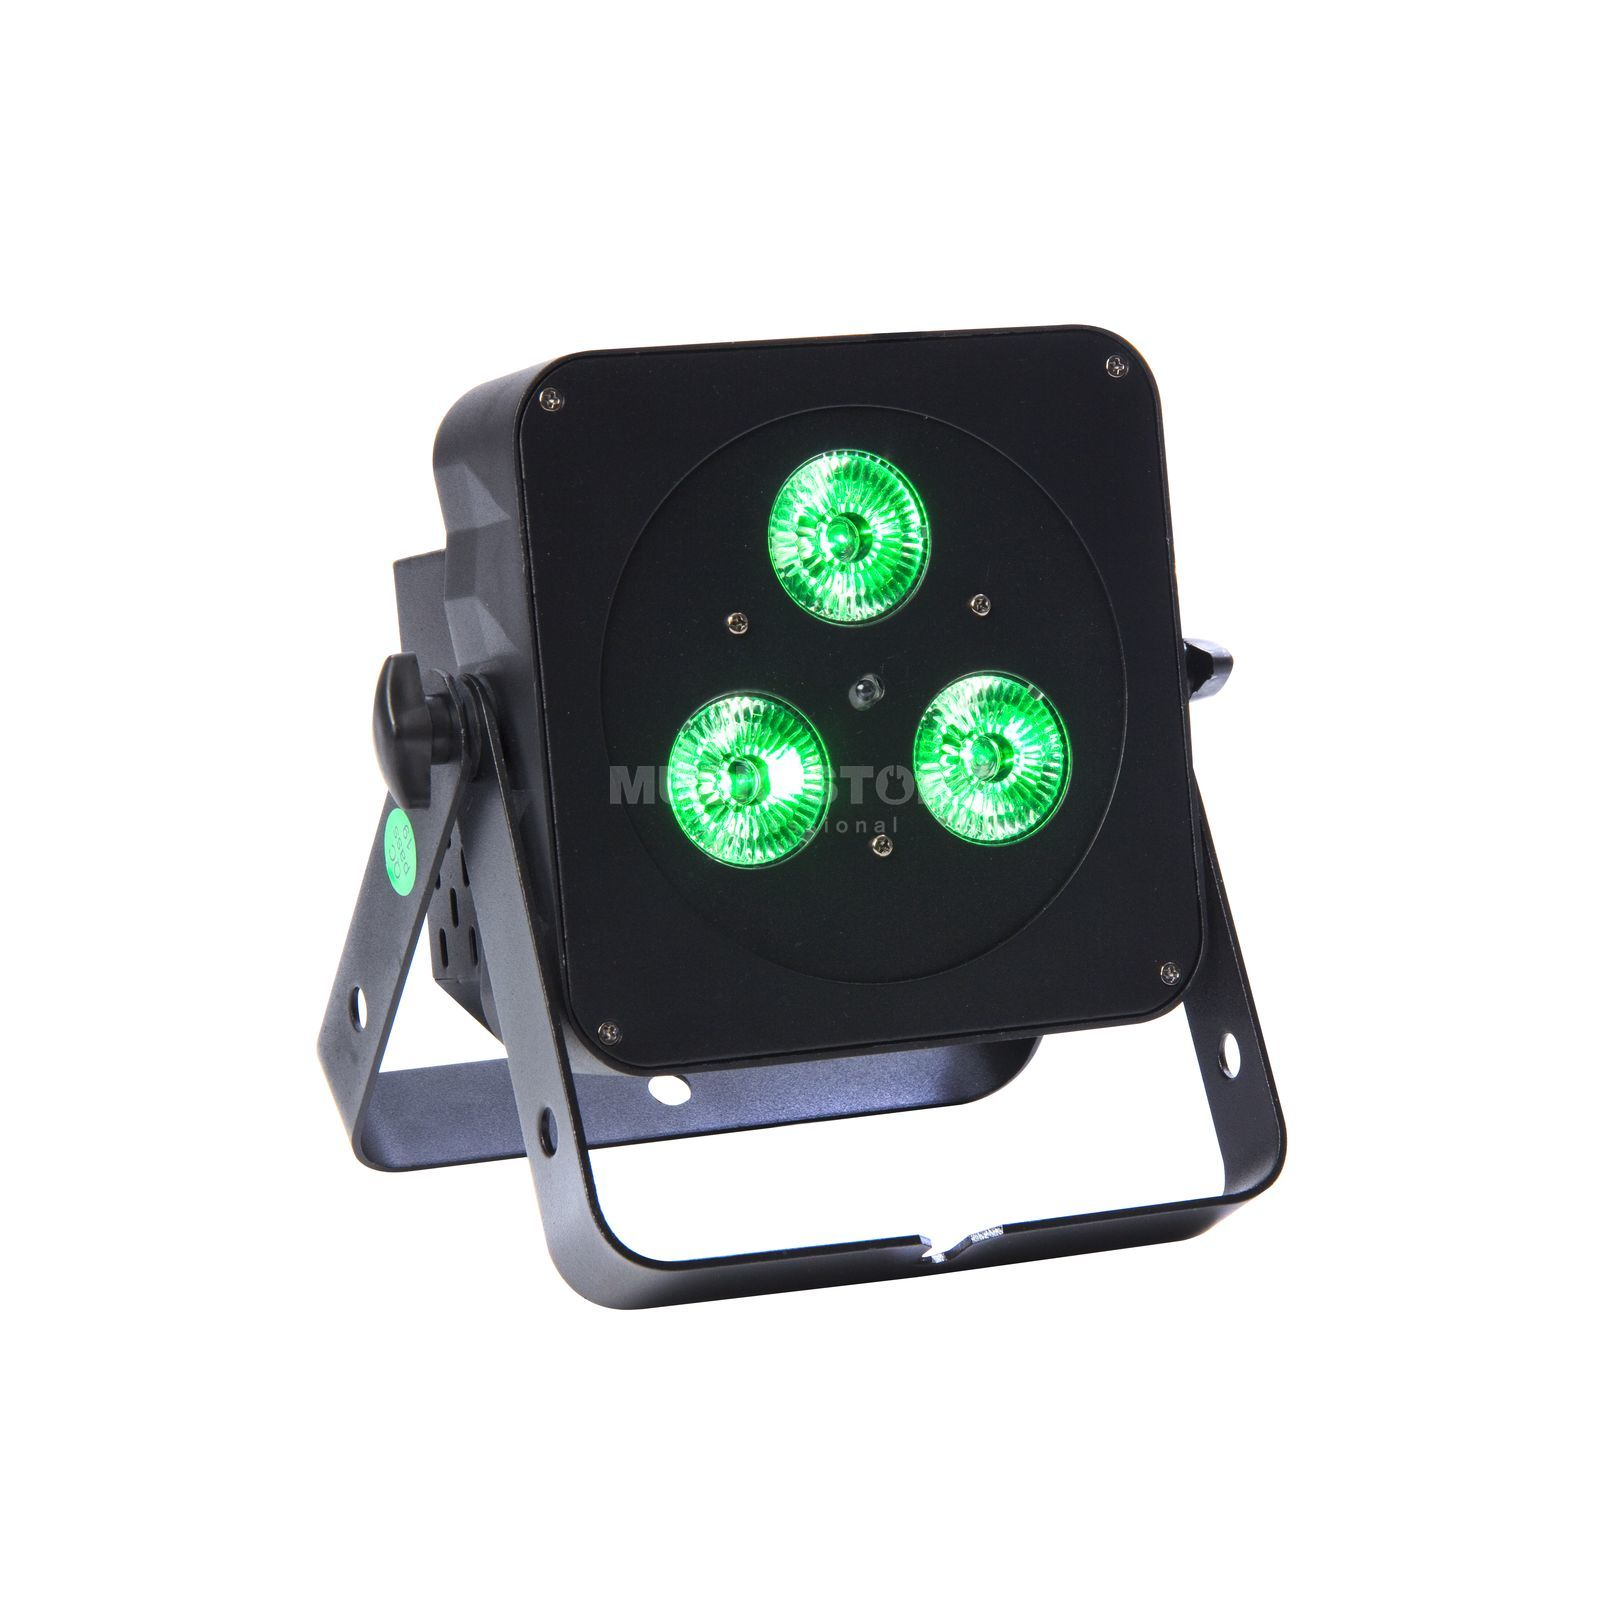 lightmaXX FLAT PAR MINI QUAD 3x5W RGBW, black, IR Remote Produktbillede